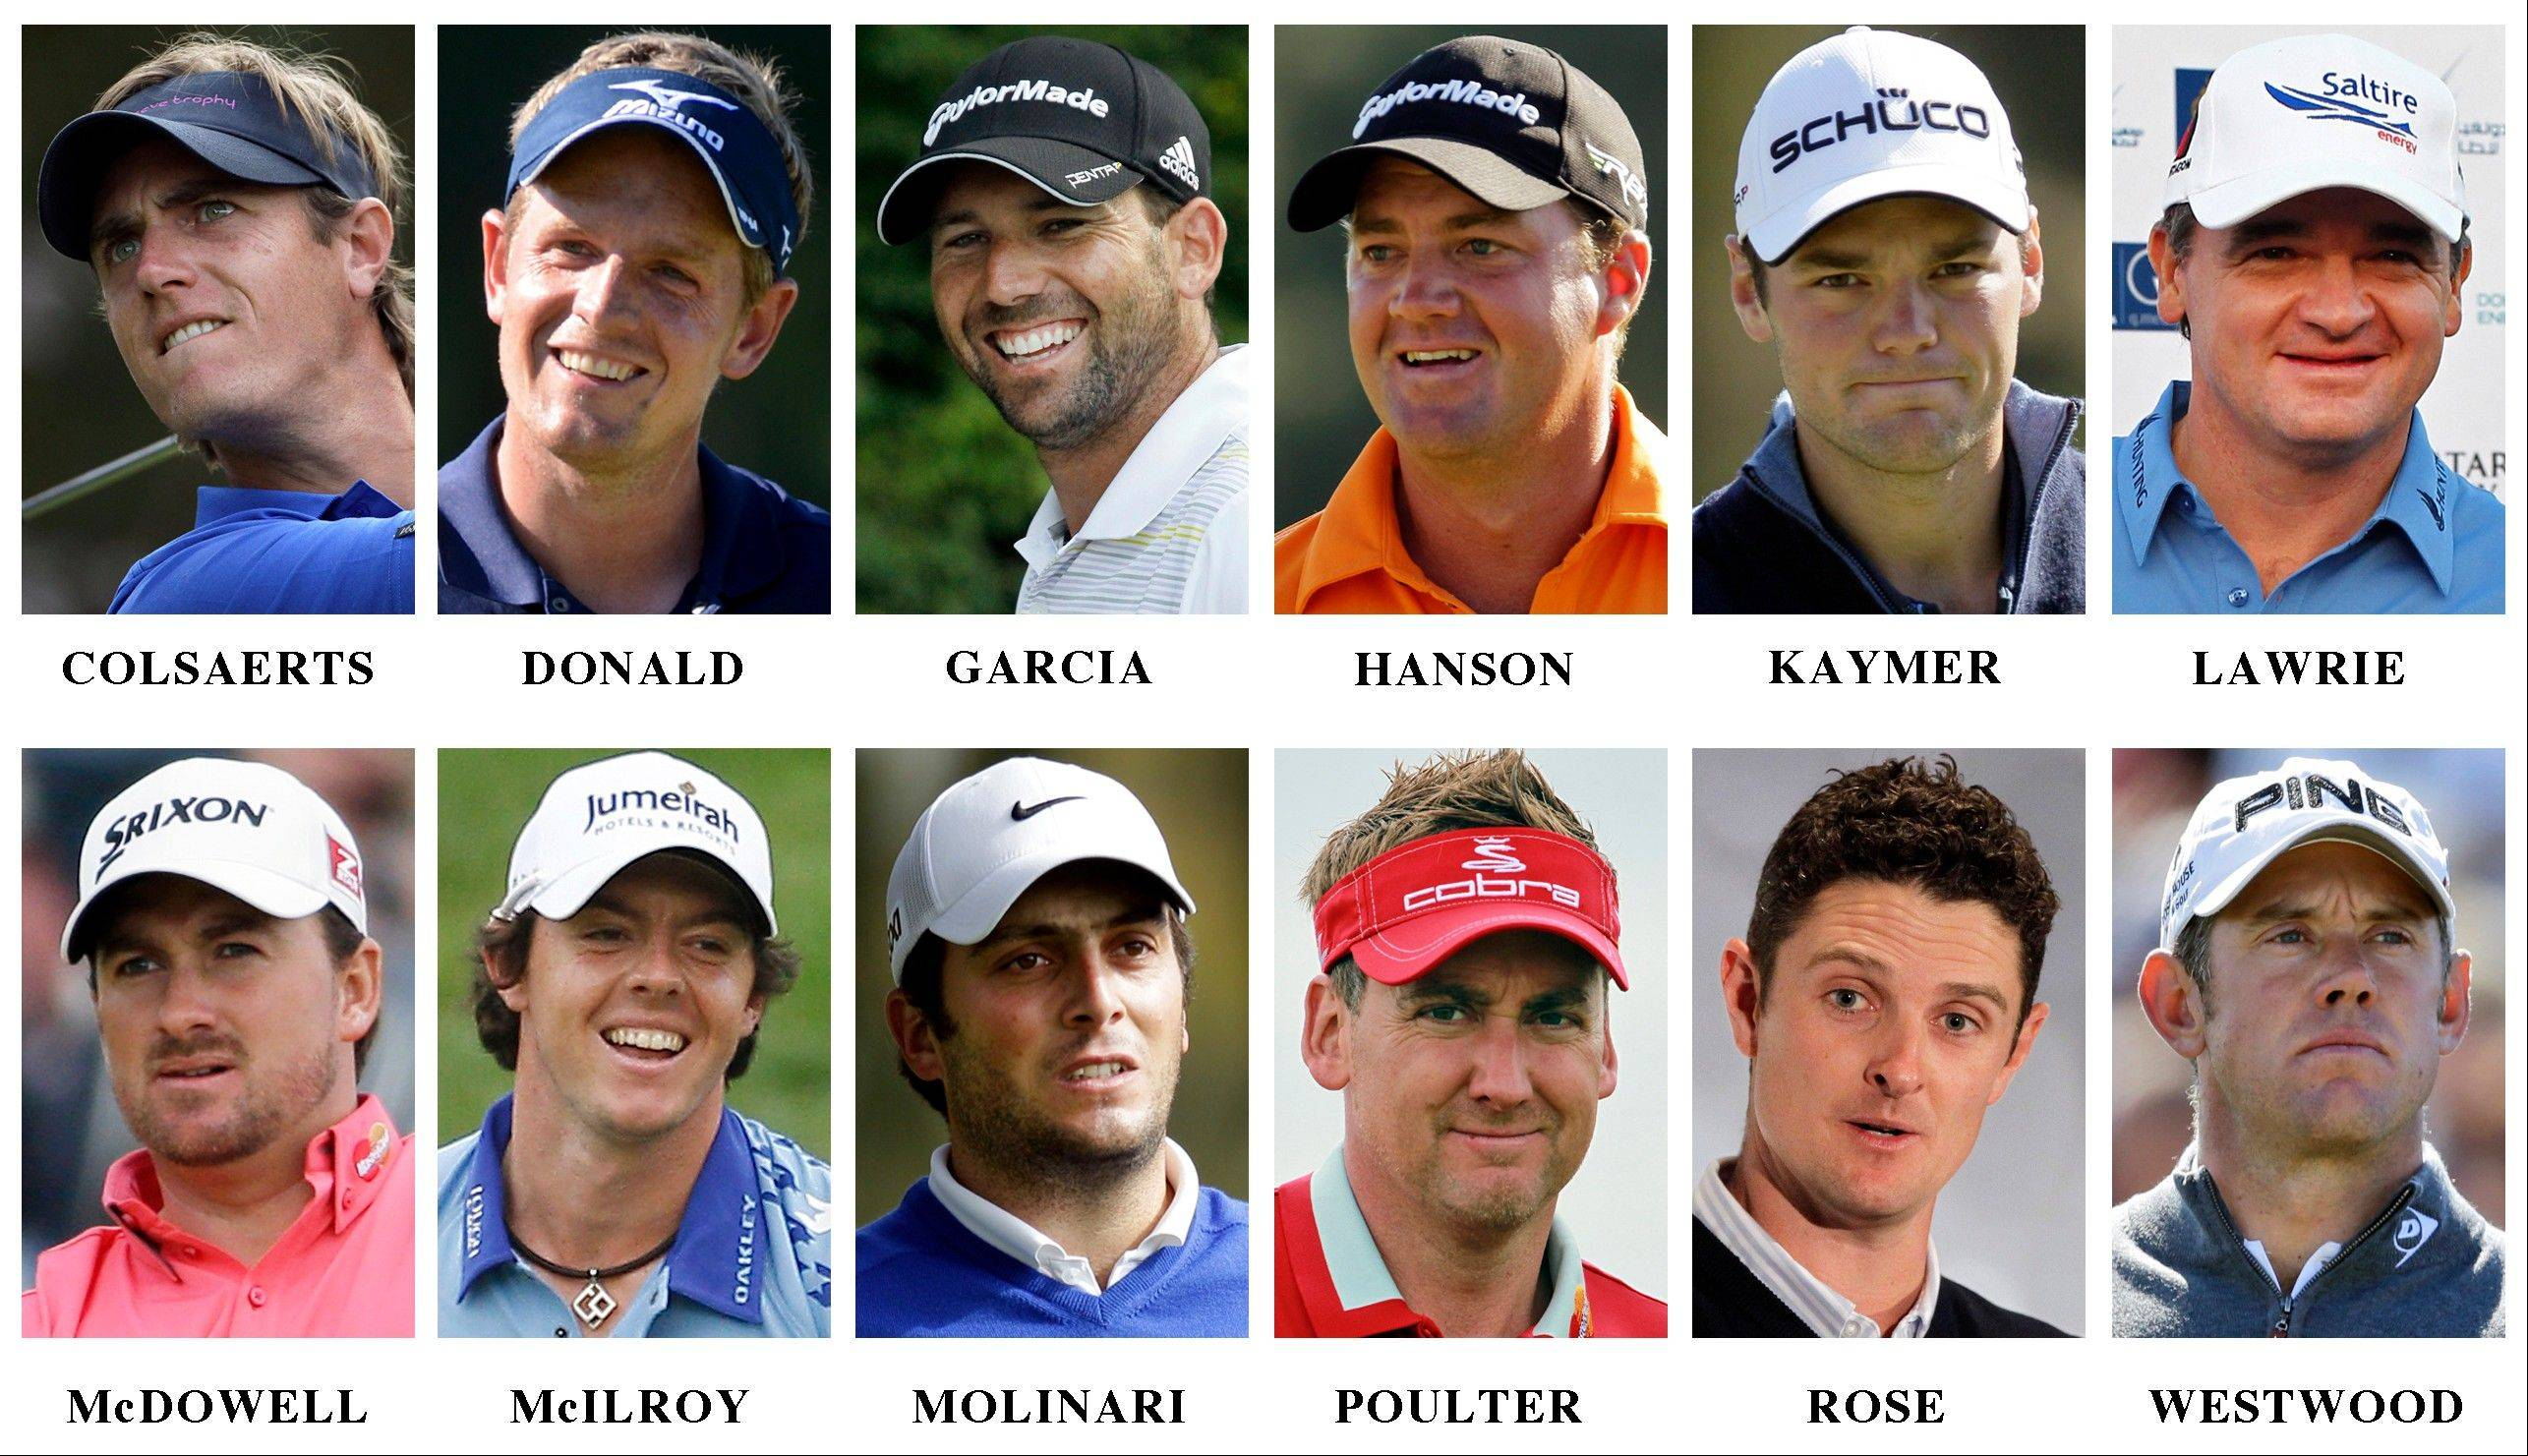 The Europe Ryder Cup golf team, top row from left: Nicolas Colsaerts, of Belgium; Luke Donald, of England; Sergio Garcia, of Spain; Peter Hanson of Sweden; Martin Kaymer, of Germany, and Paul Lawrie, of Scotland. Bottom row, from left: Graeme McDowell, of Northern Ireland; Rory McIlroy, of Northern Ireland; Francesco Molinari, of Italy; Ian Poulter, of England; Justin Rose, of England, and Lee Westwood, of England.